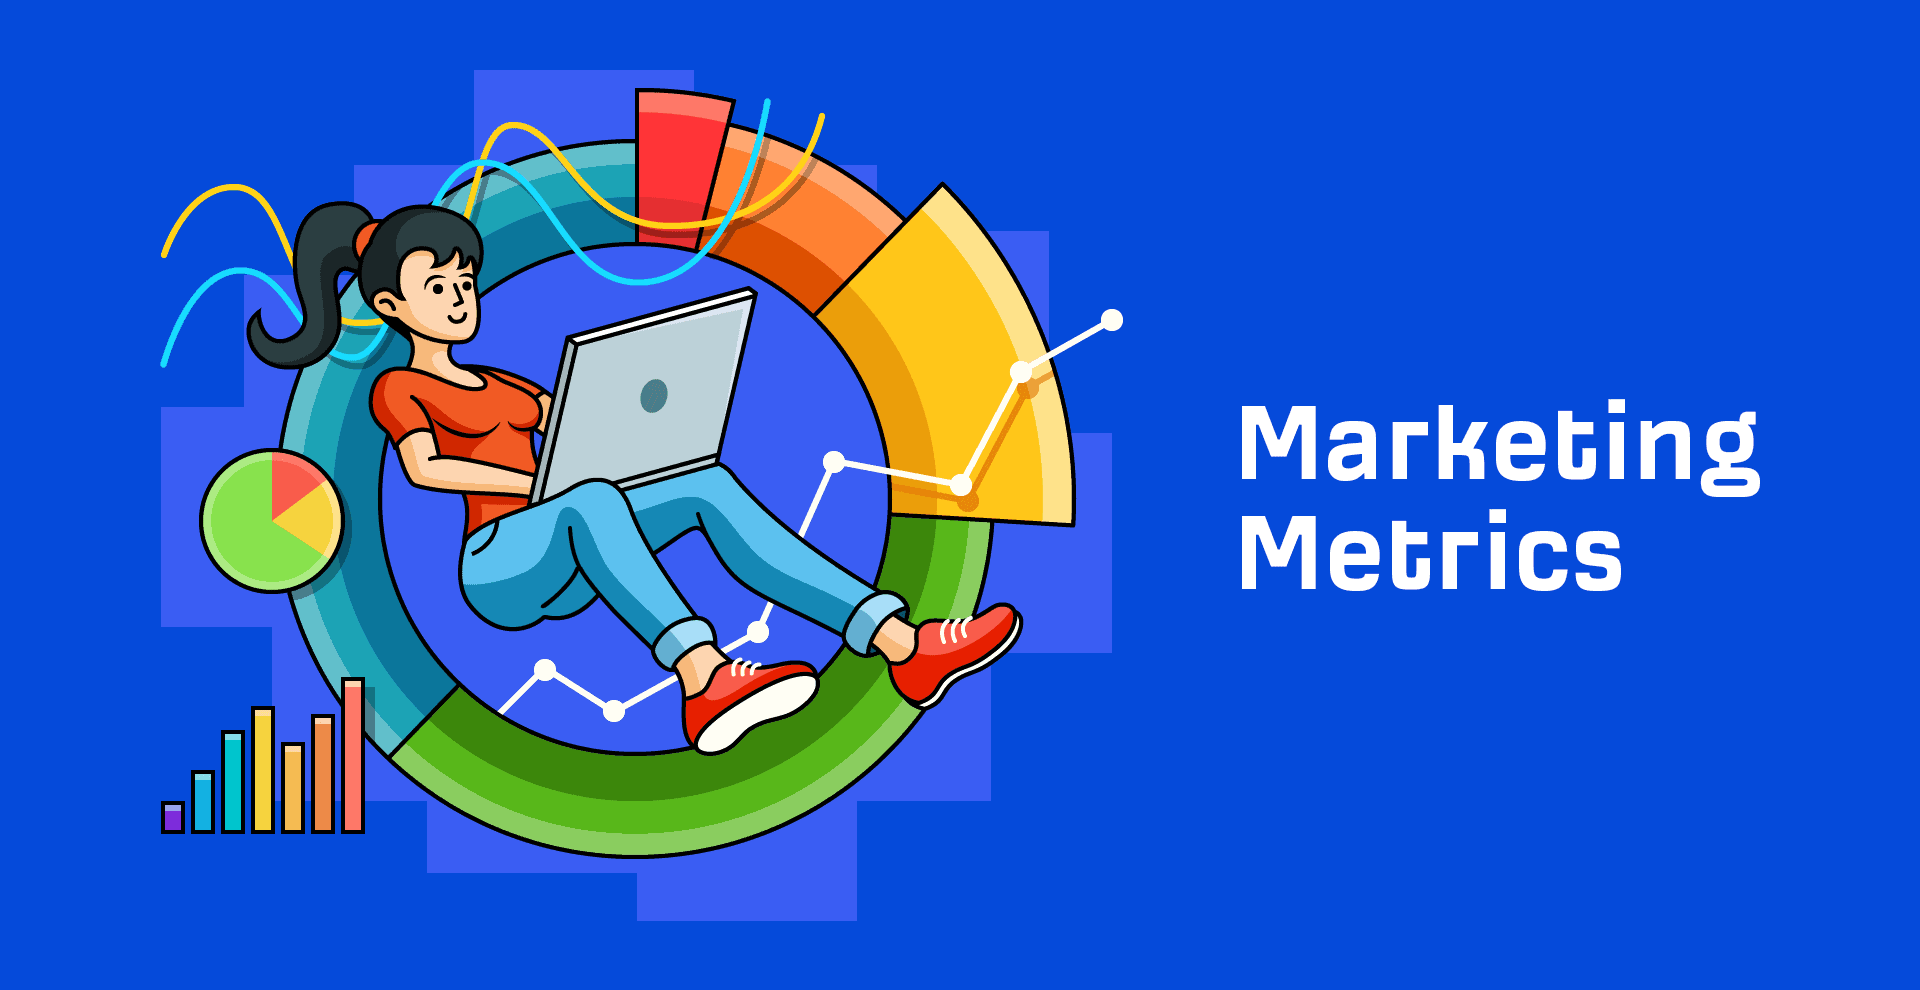 25 Marketing Metrics You Should Consider Tracking